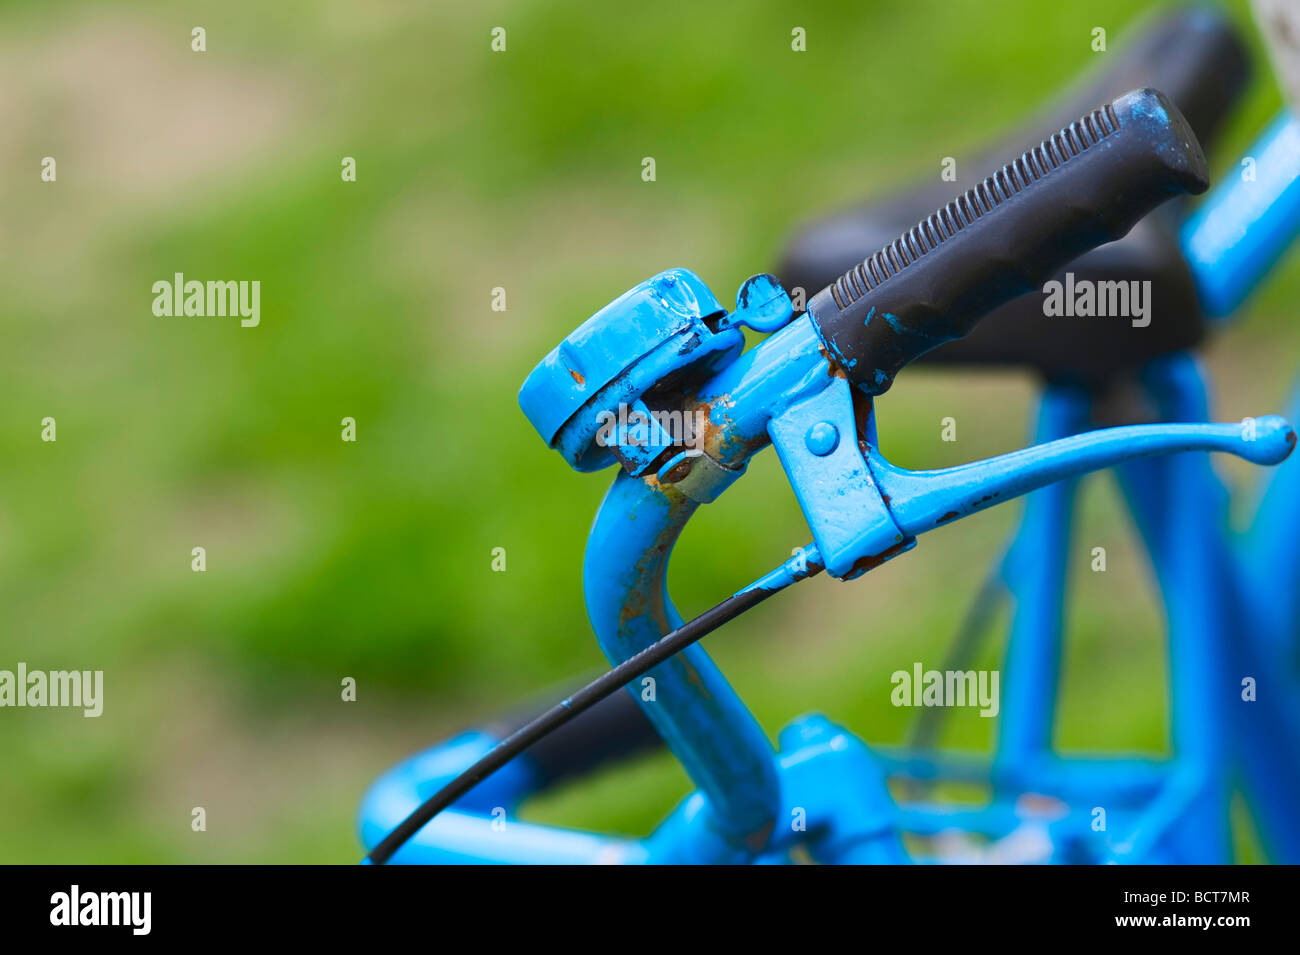 Handlebar of an old bicycle painted blue - Stock Image